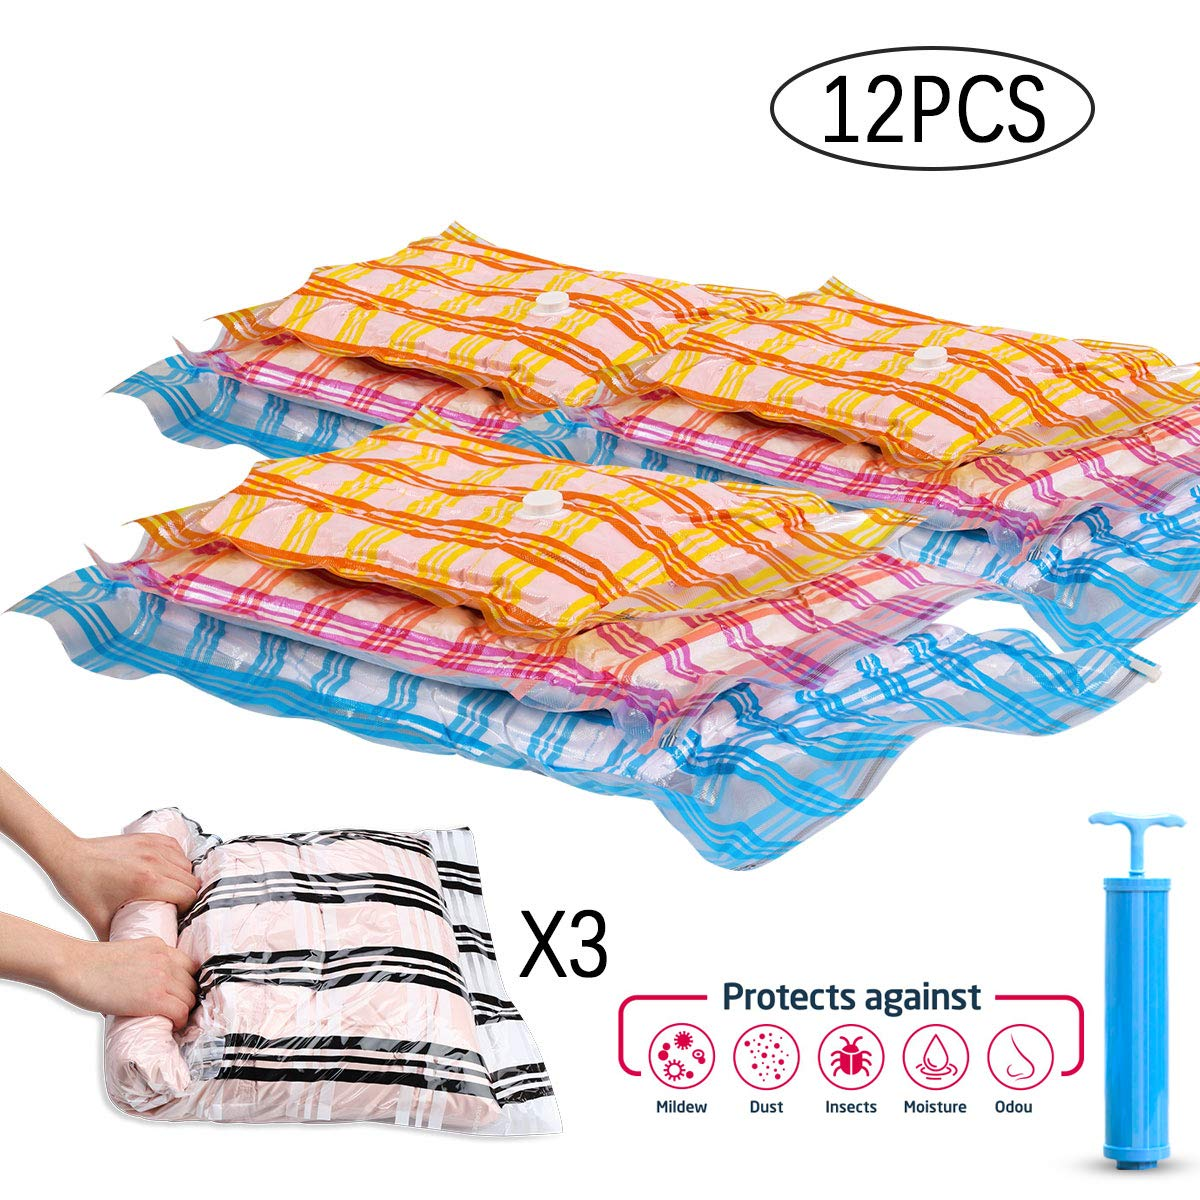 Storage Master 12 Vacuum Storage Bags, Space Saver Bags, 12-Pack (3 Jumbo, 3 Large, 3 Medium, 3 Roll-Up) with Hand Pump (12-Combo)